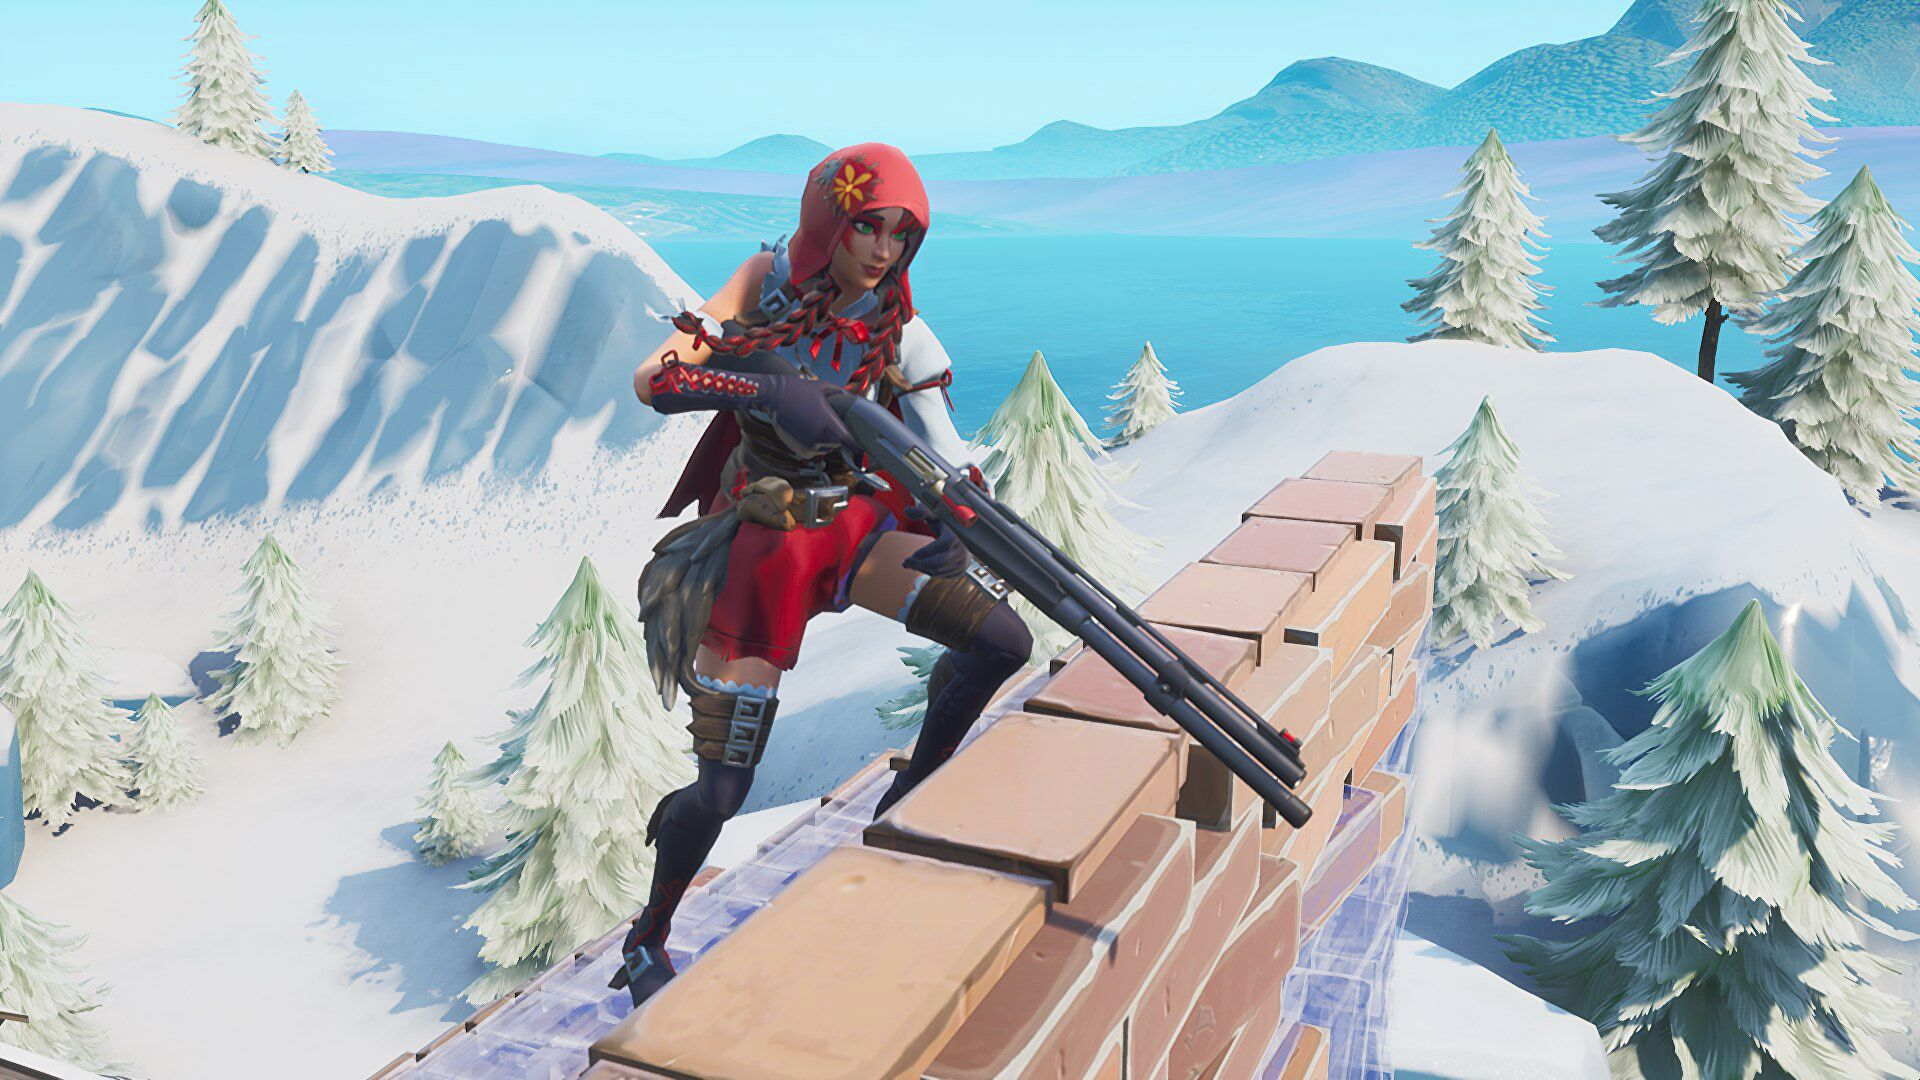 What Does The Red Marker Mean In Fortnite Fortnite Shotguns Guide V9 00 Fortnite Shotgun Tips Fortnite S Best Shotgun How To Win Shotgun Fights Rock Paper Shotgun